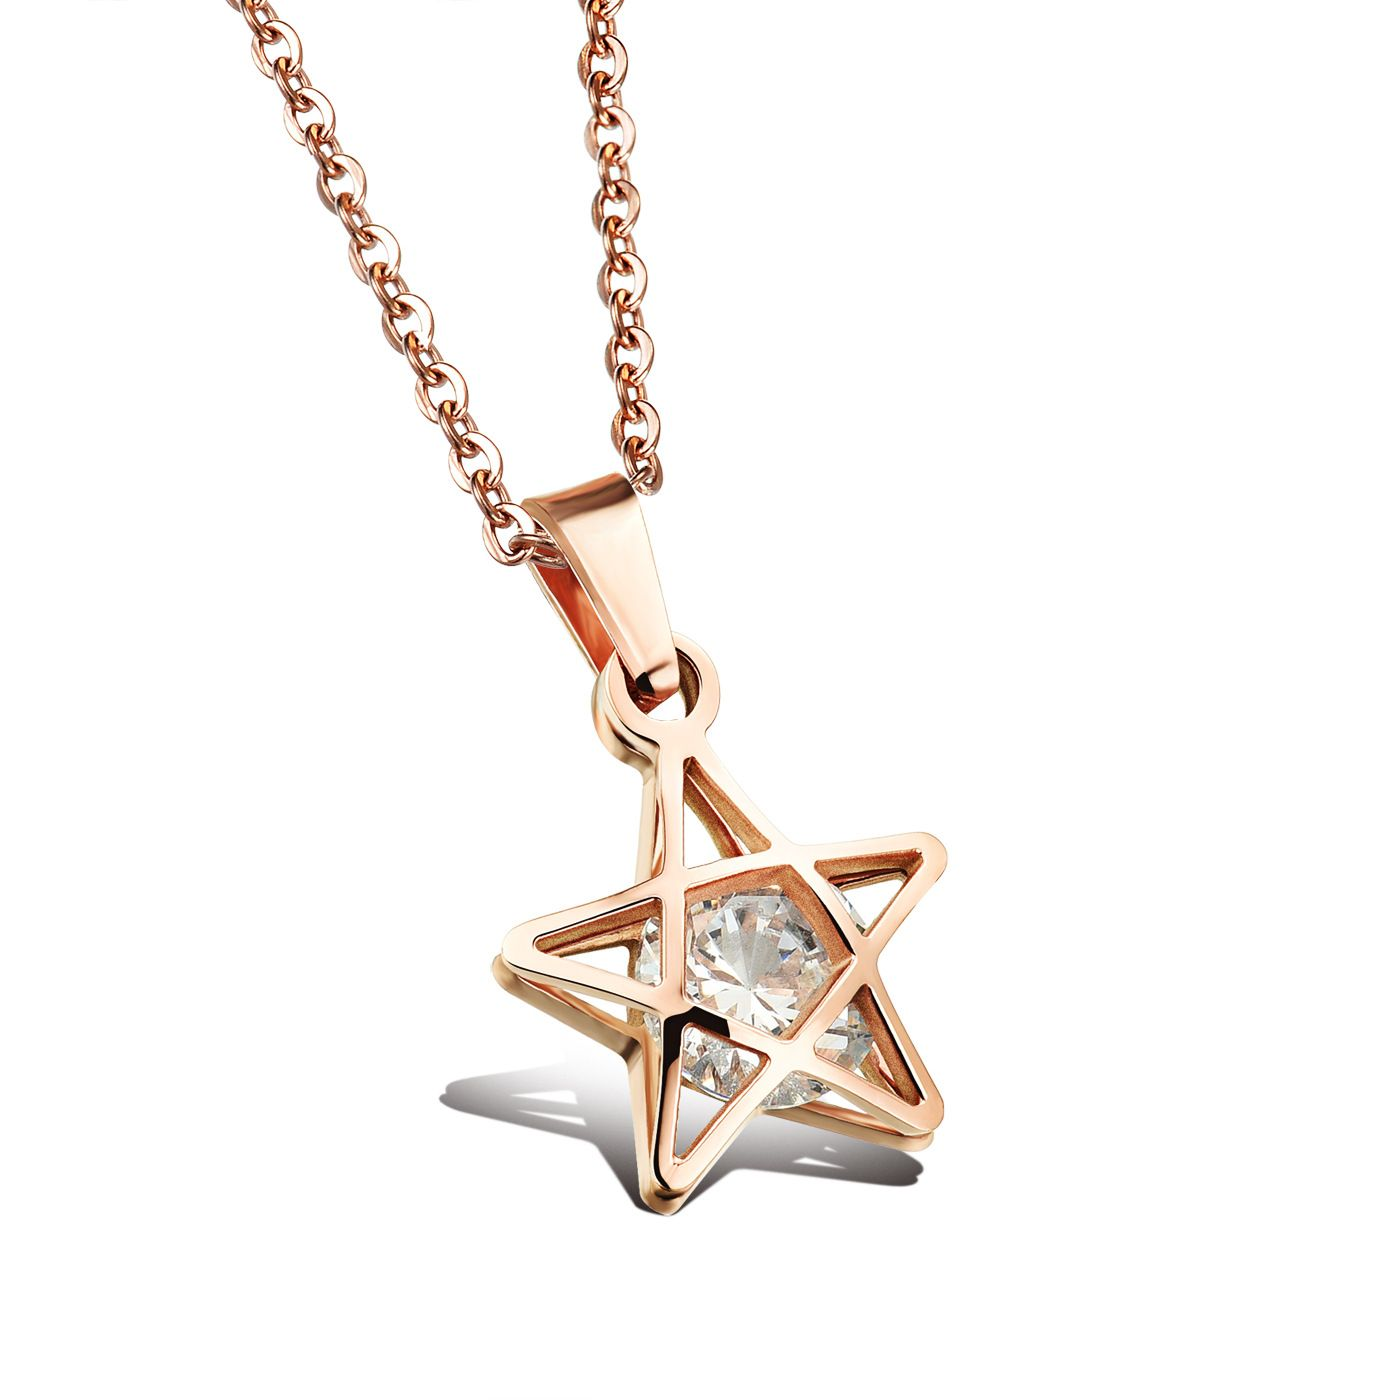 Romantic Fivepointed Star Pendant Necklaces Womens SilverRose Gold